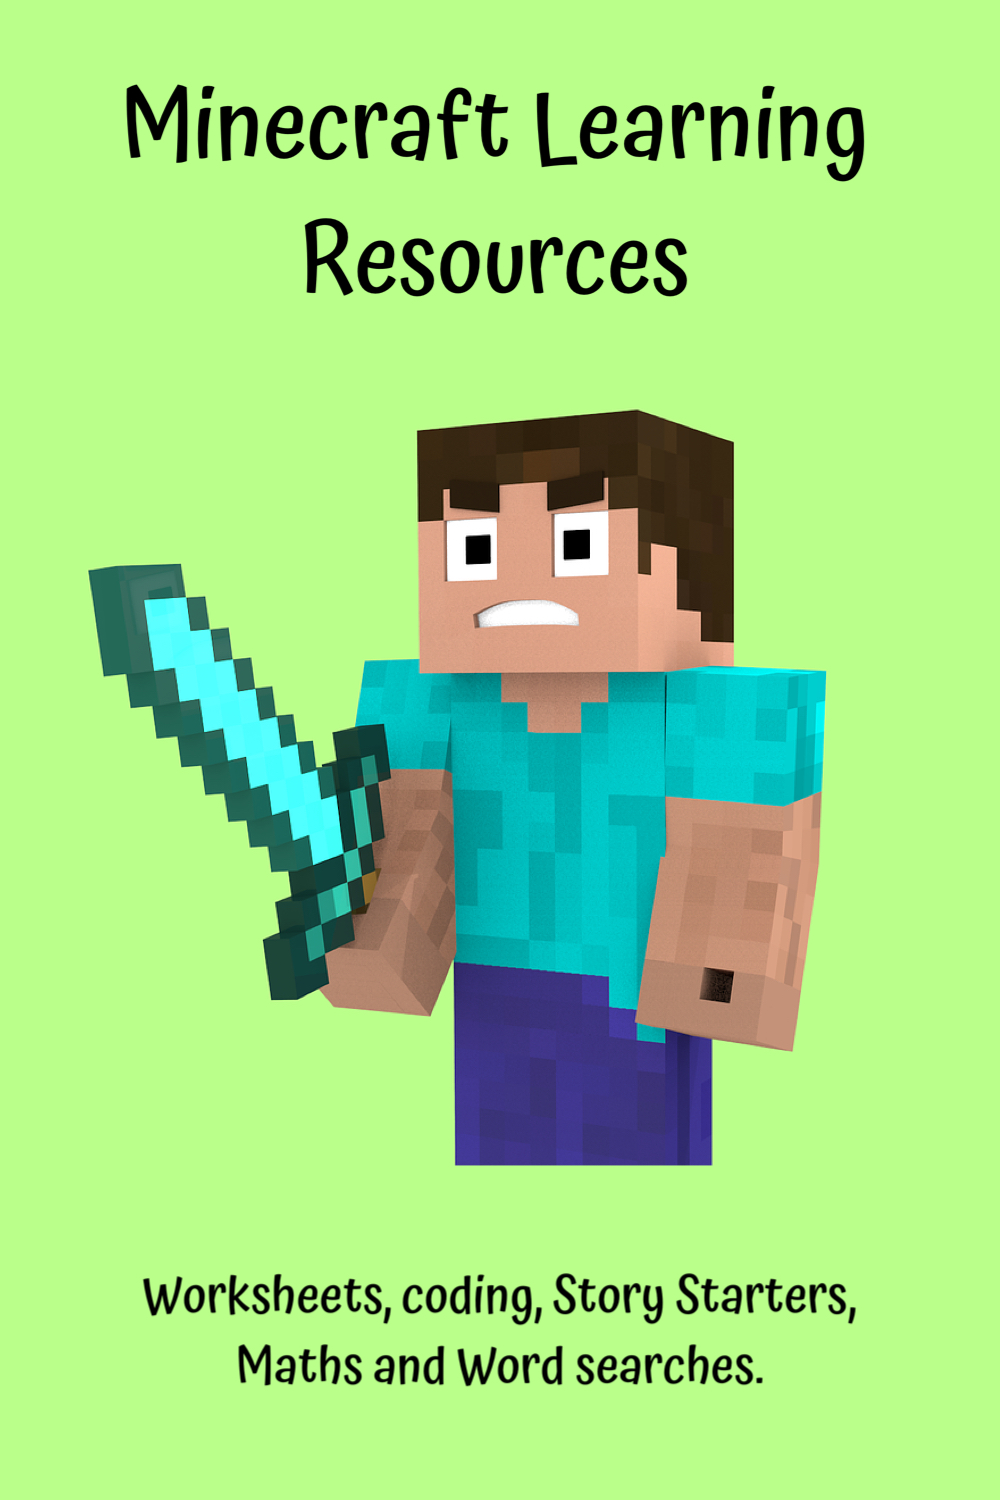 Minecraft learning resources - worksheets, coding, maths, story starters and word searches.